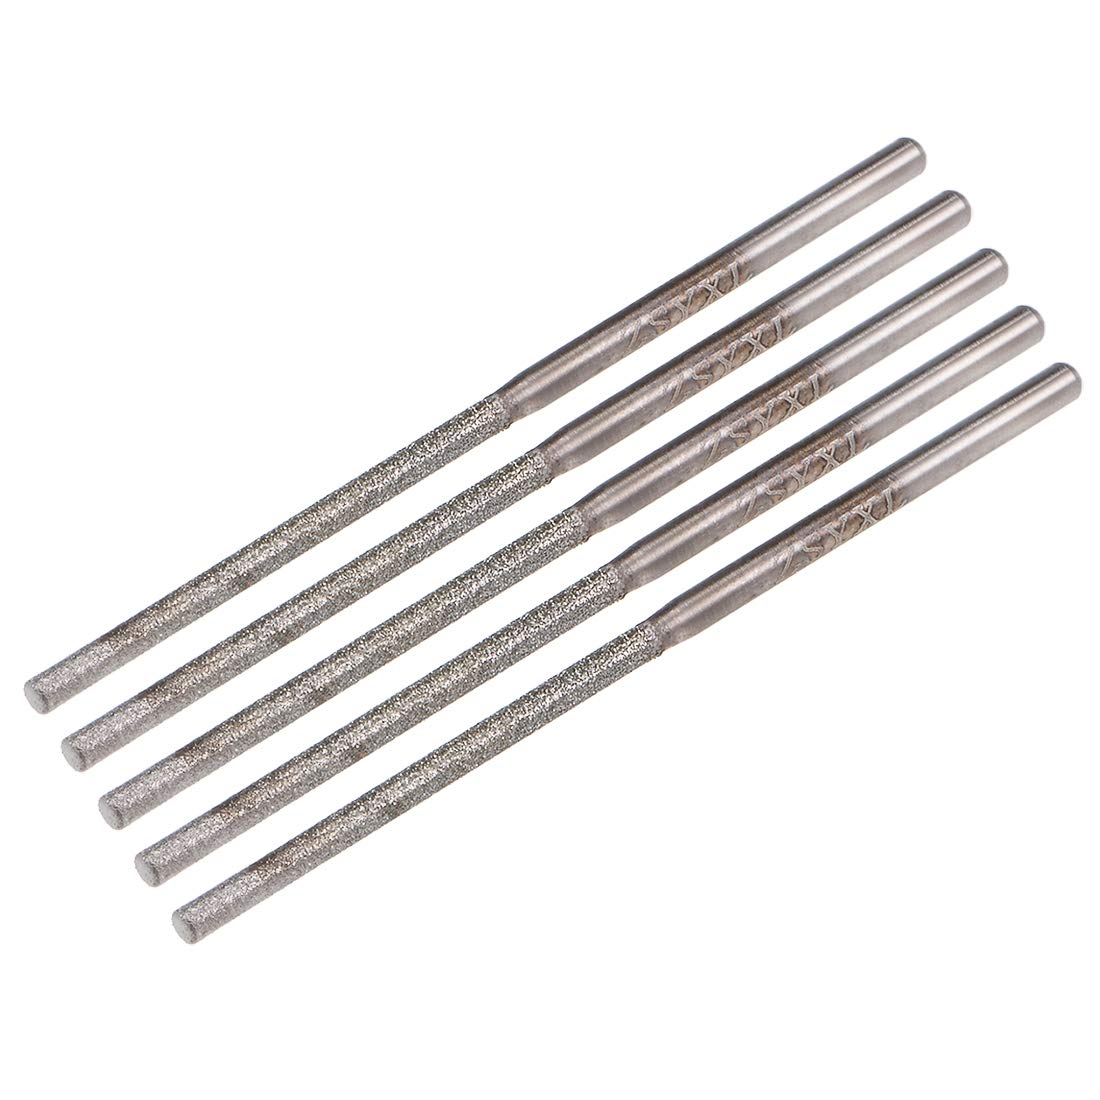 uxcell Diamond Burrs Bits Grinding Drill Carving Rotary Tool for Glass Stone Ceramic 150 Grit 1//4 Shank 10mm Cylinder Ball Nose 5 Pcs